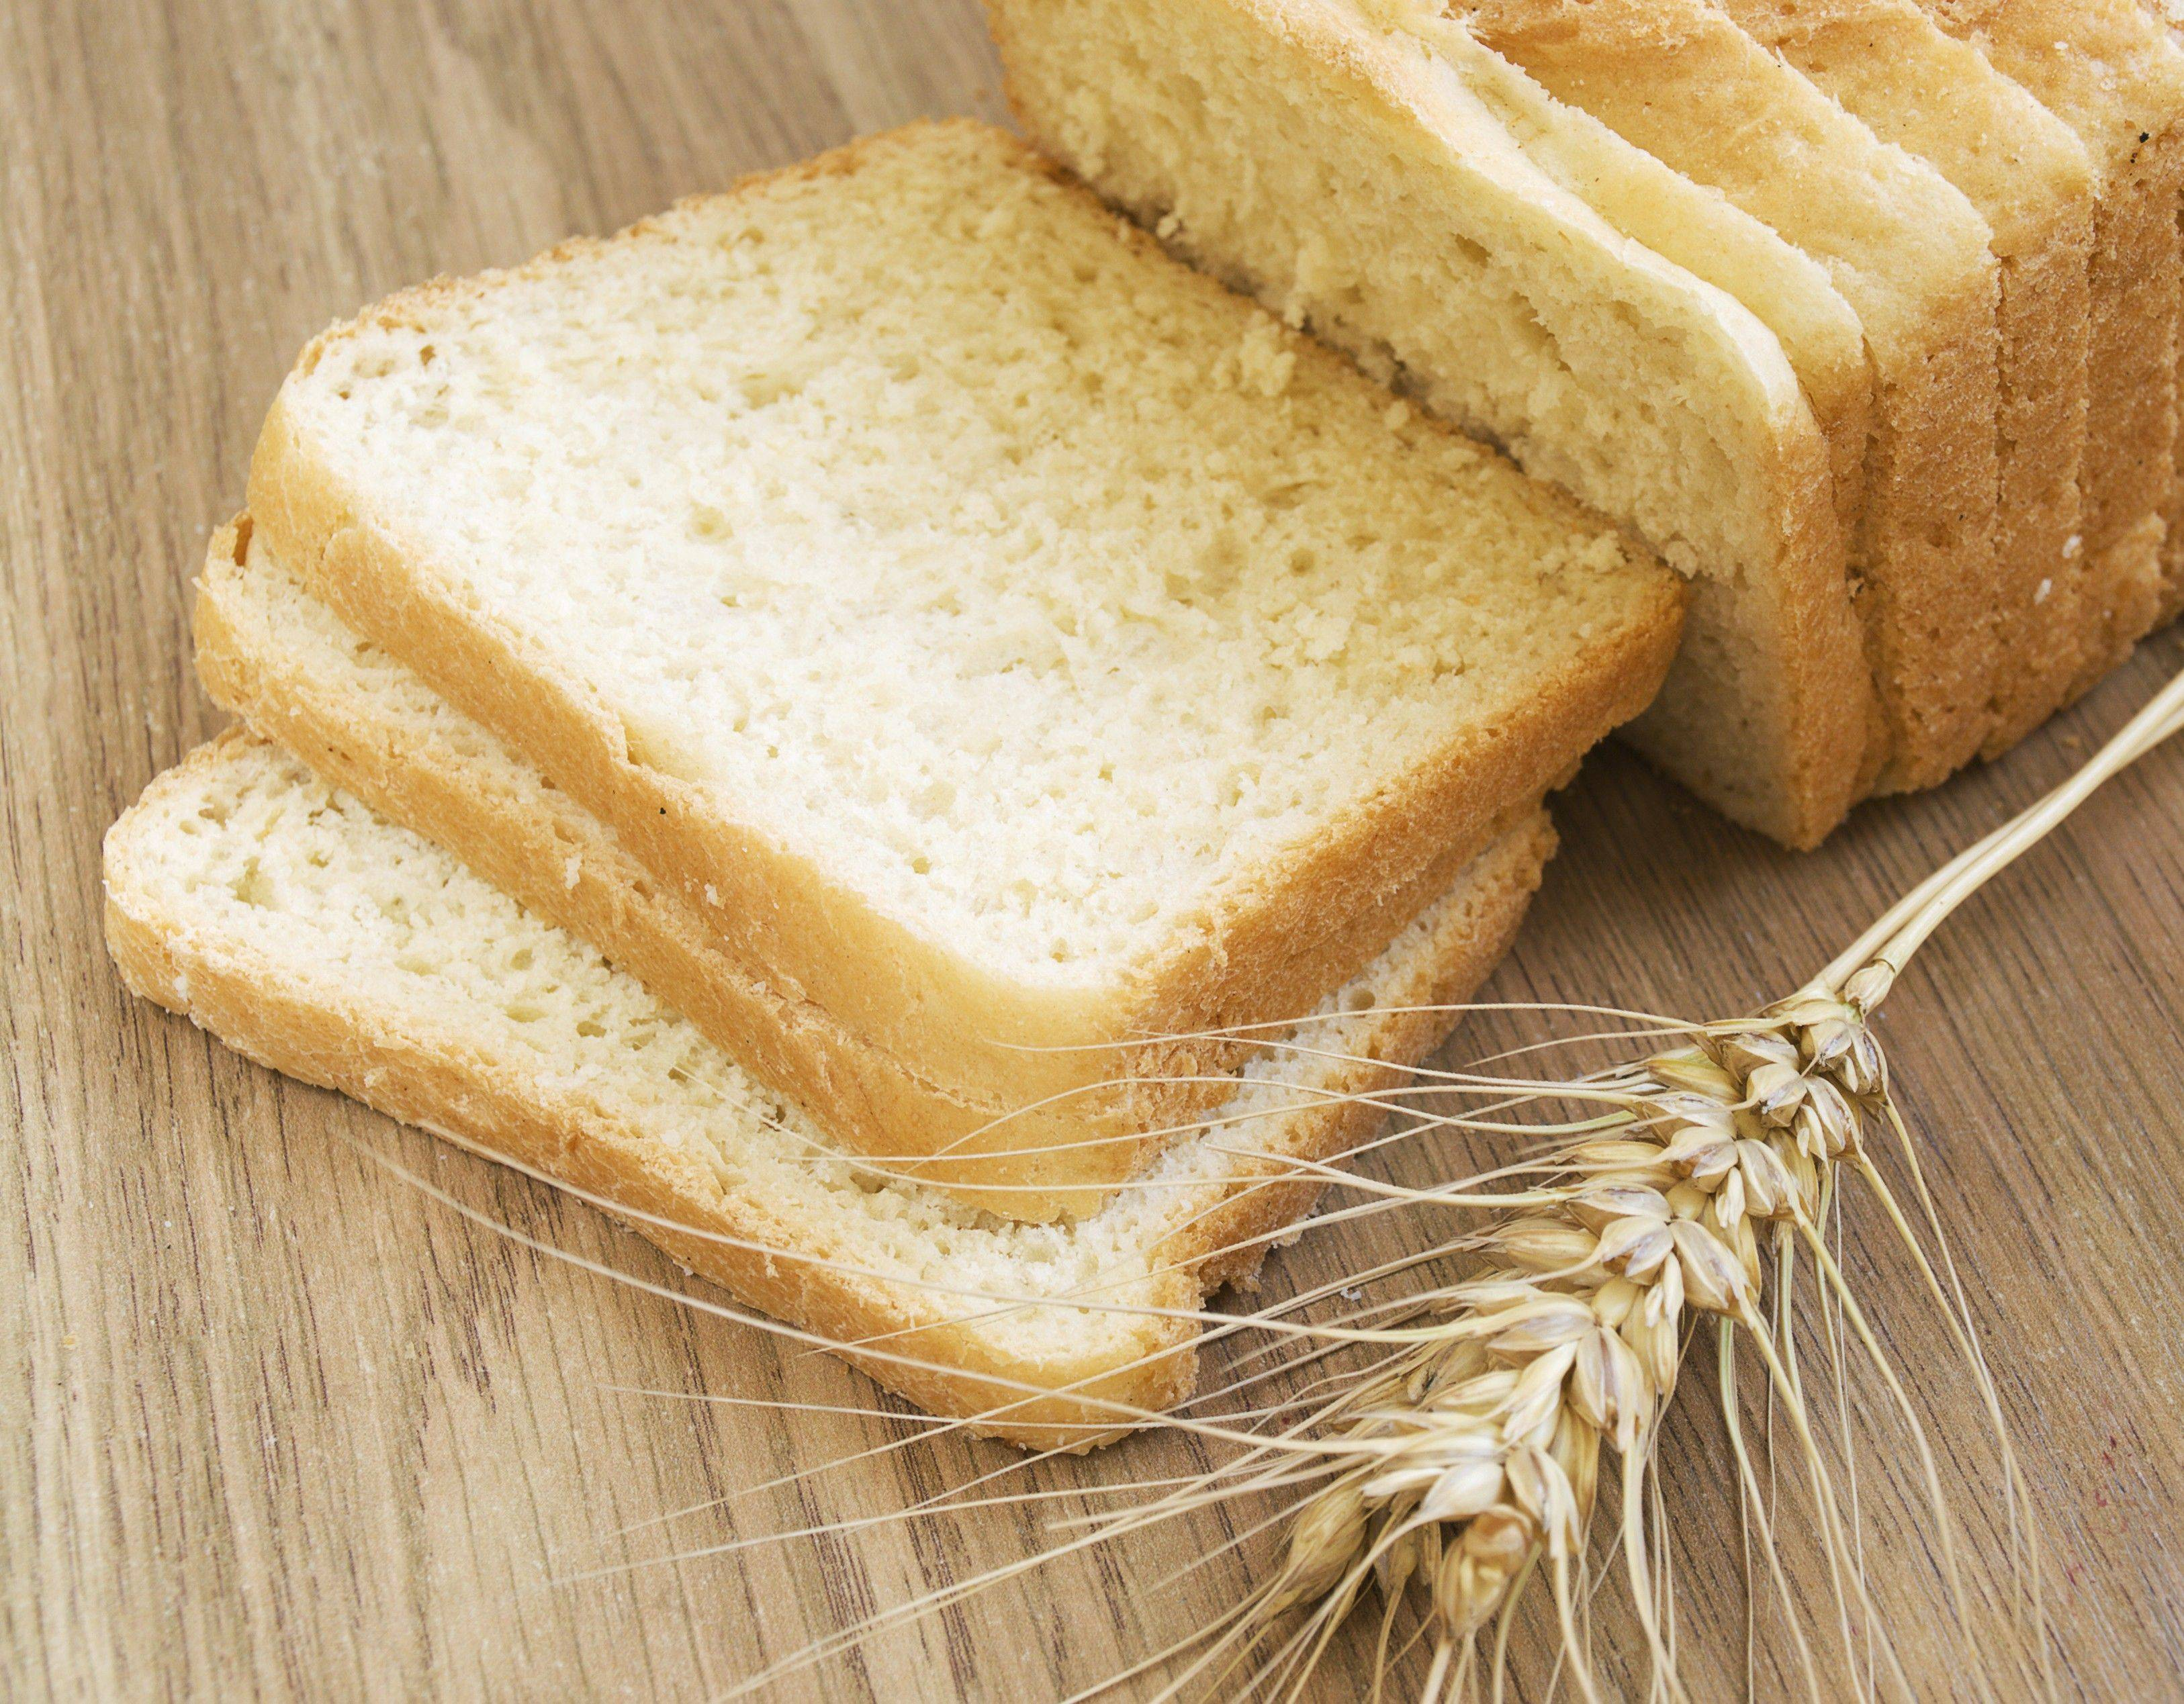 The bran of white wheat is lighter in color and milder in flavor, so this lighter whole wheat may be more readily accepted than breads made with darker bran.